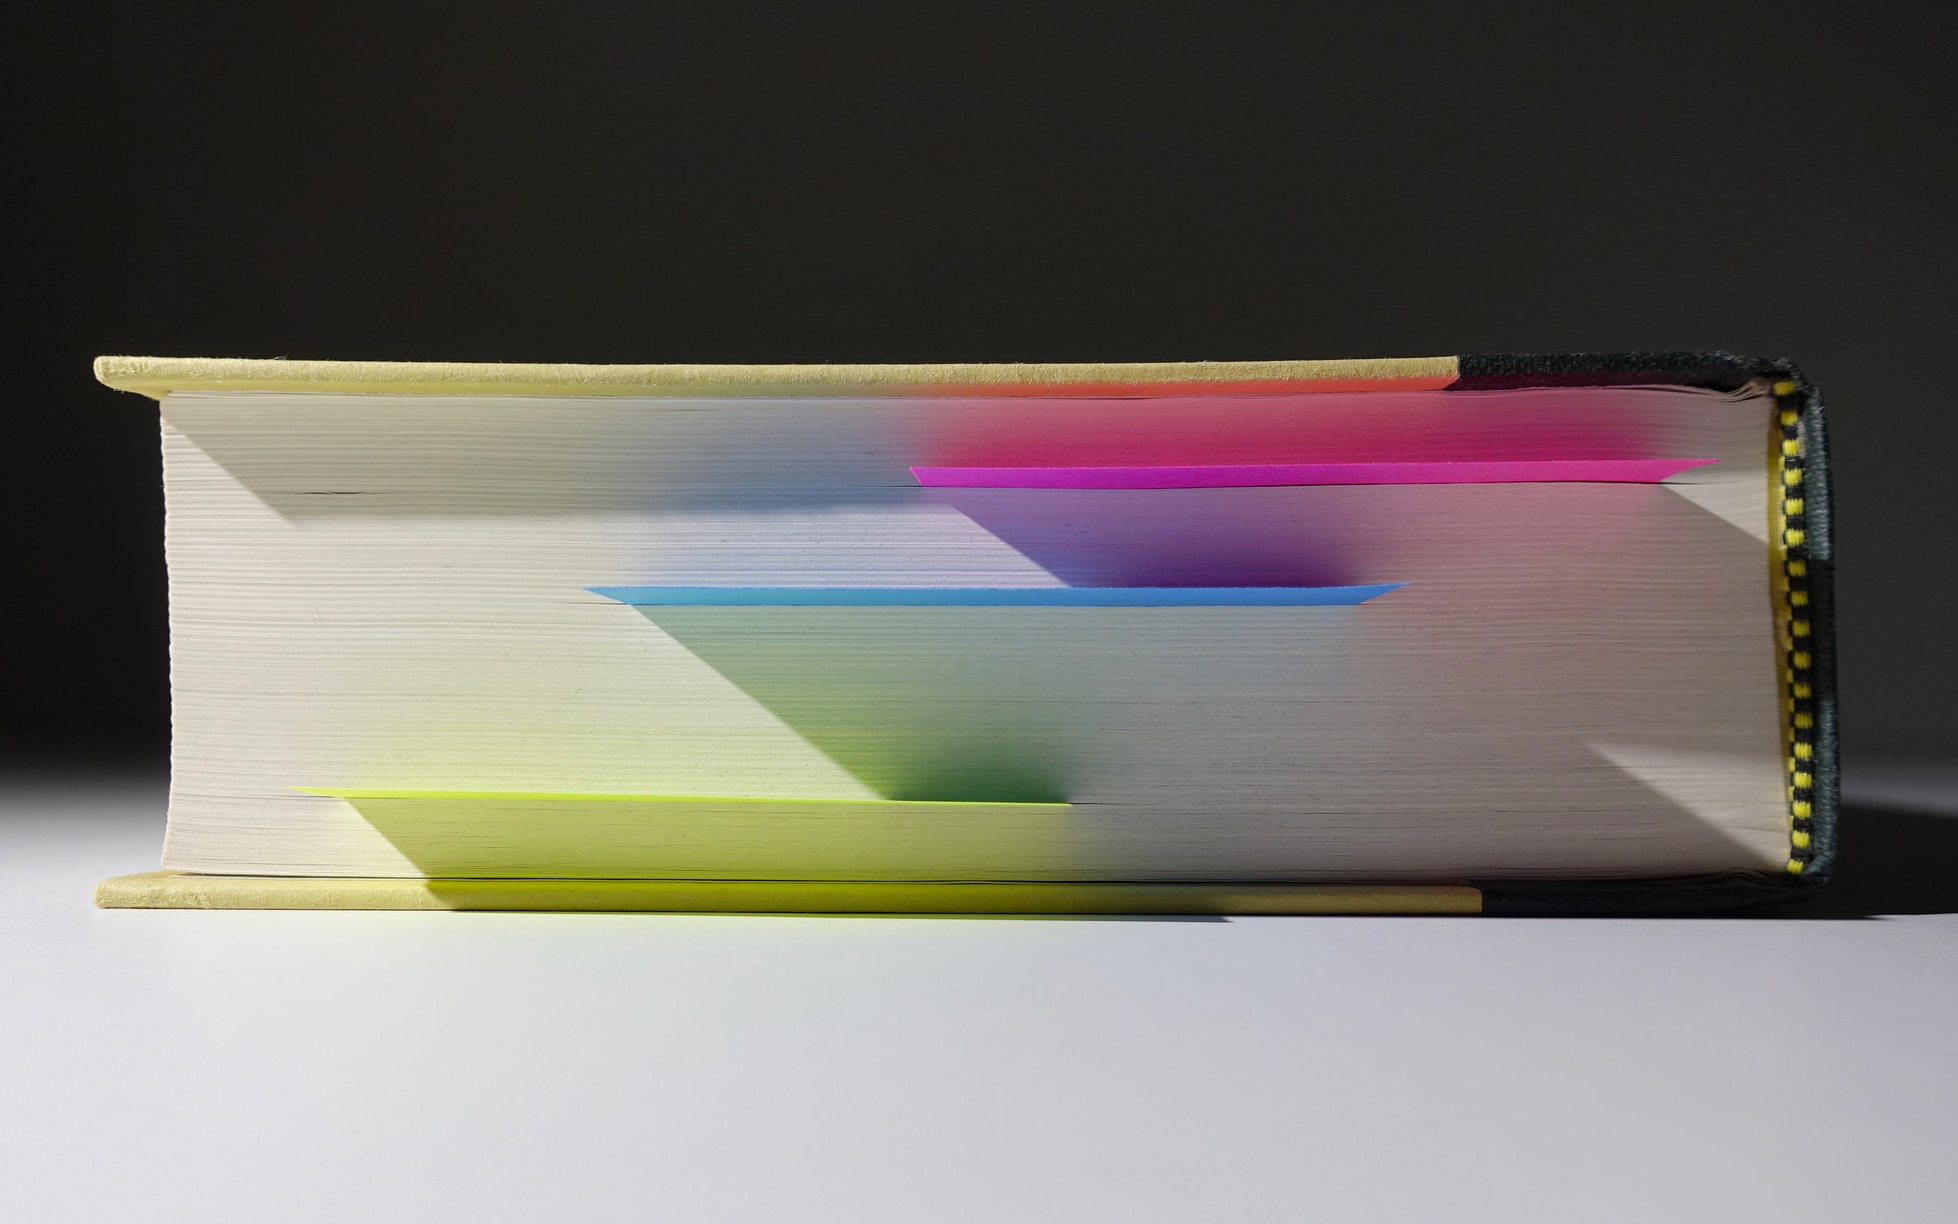 Image: A book with post-it notes marking pages.